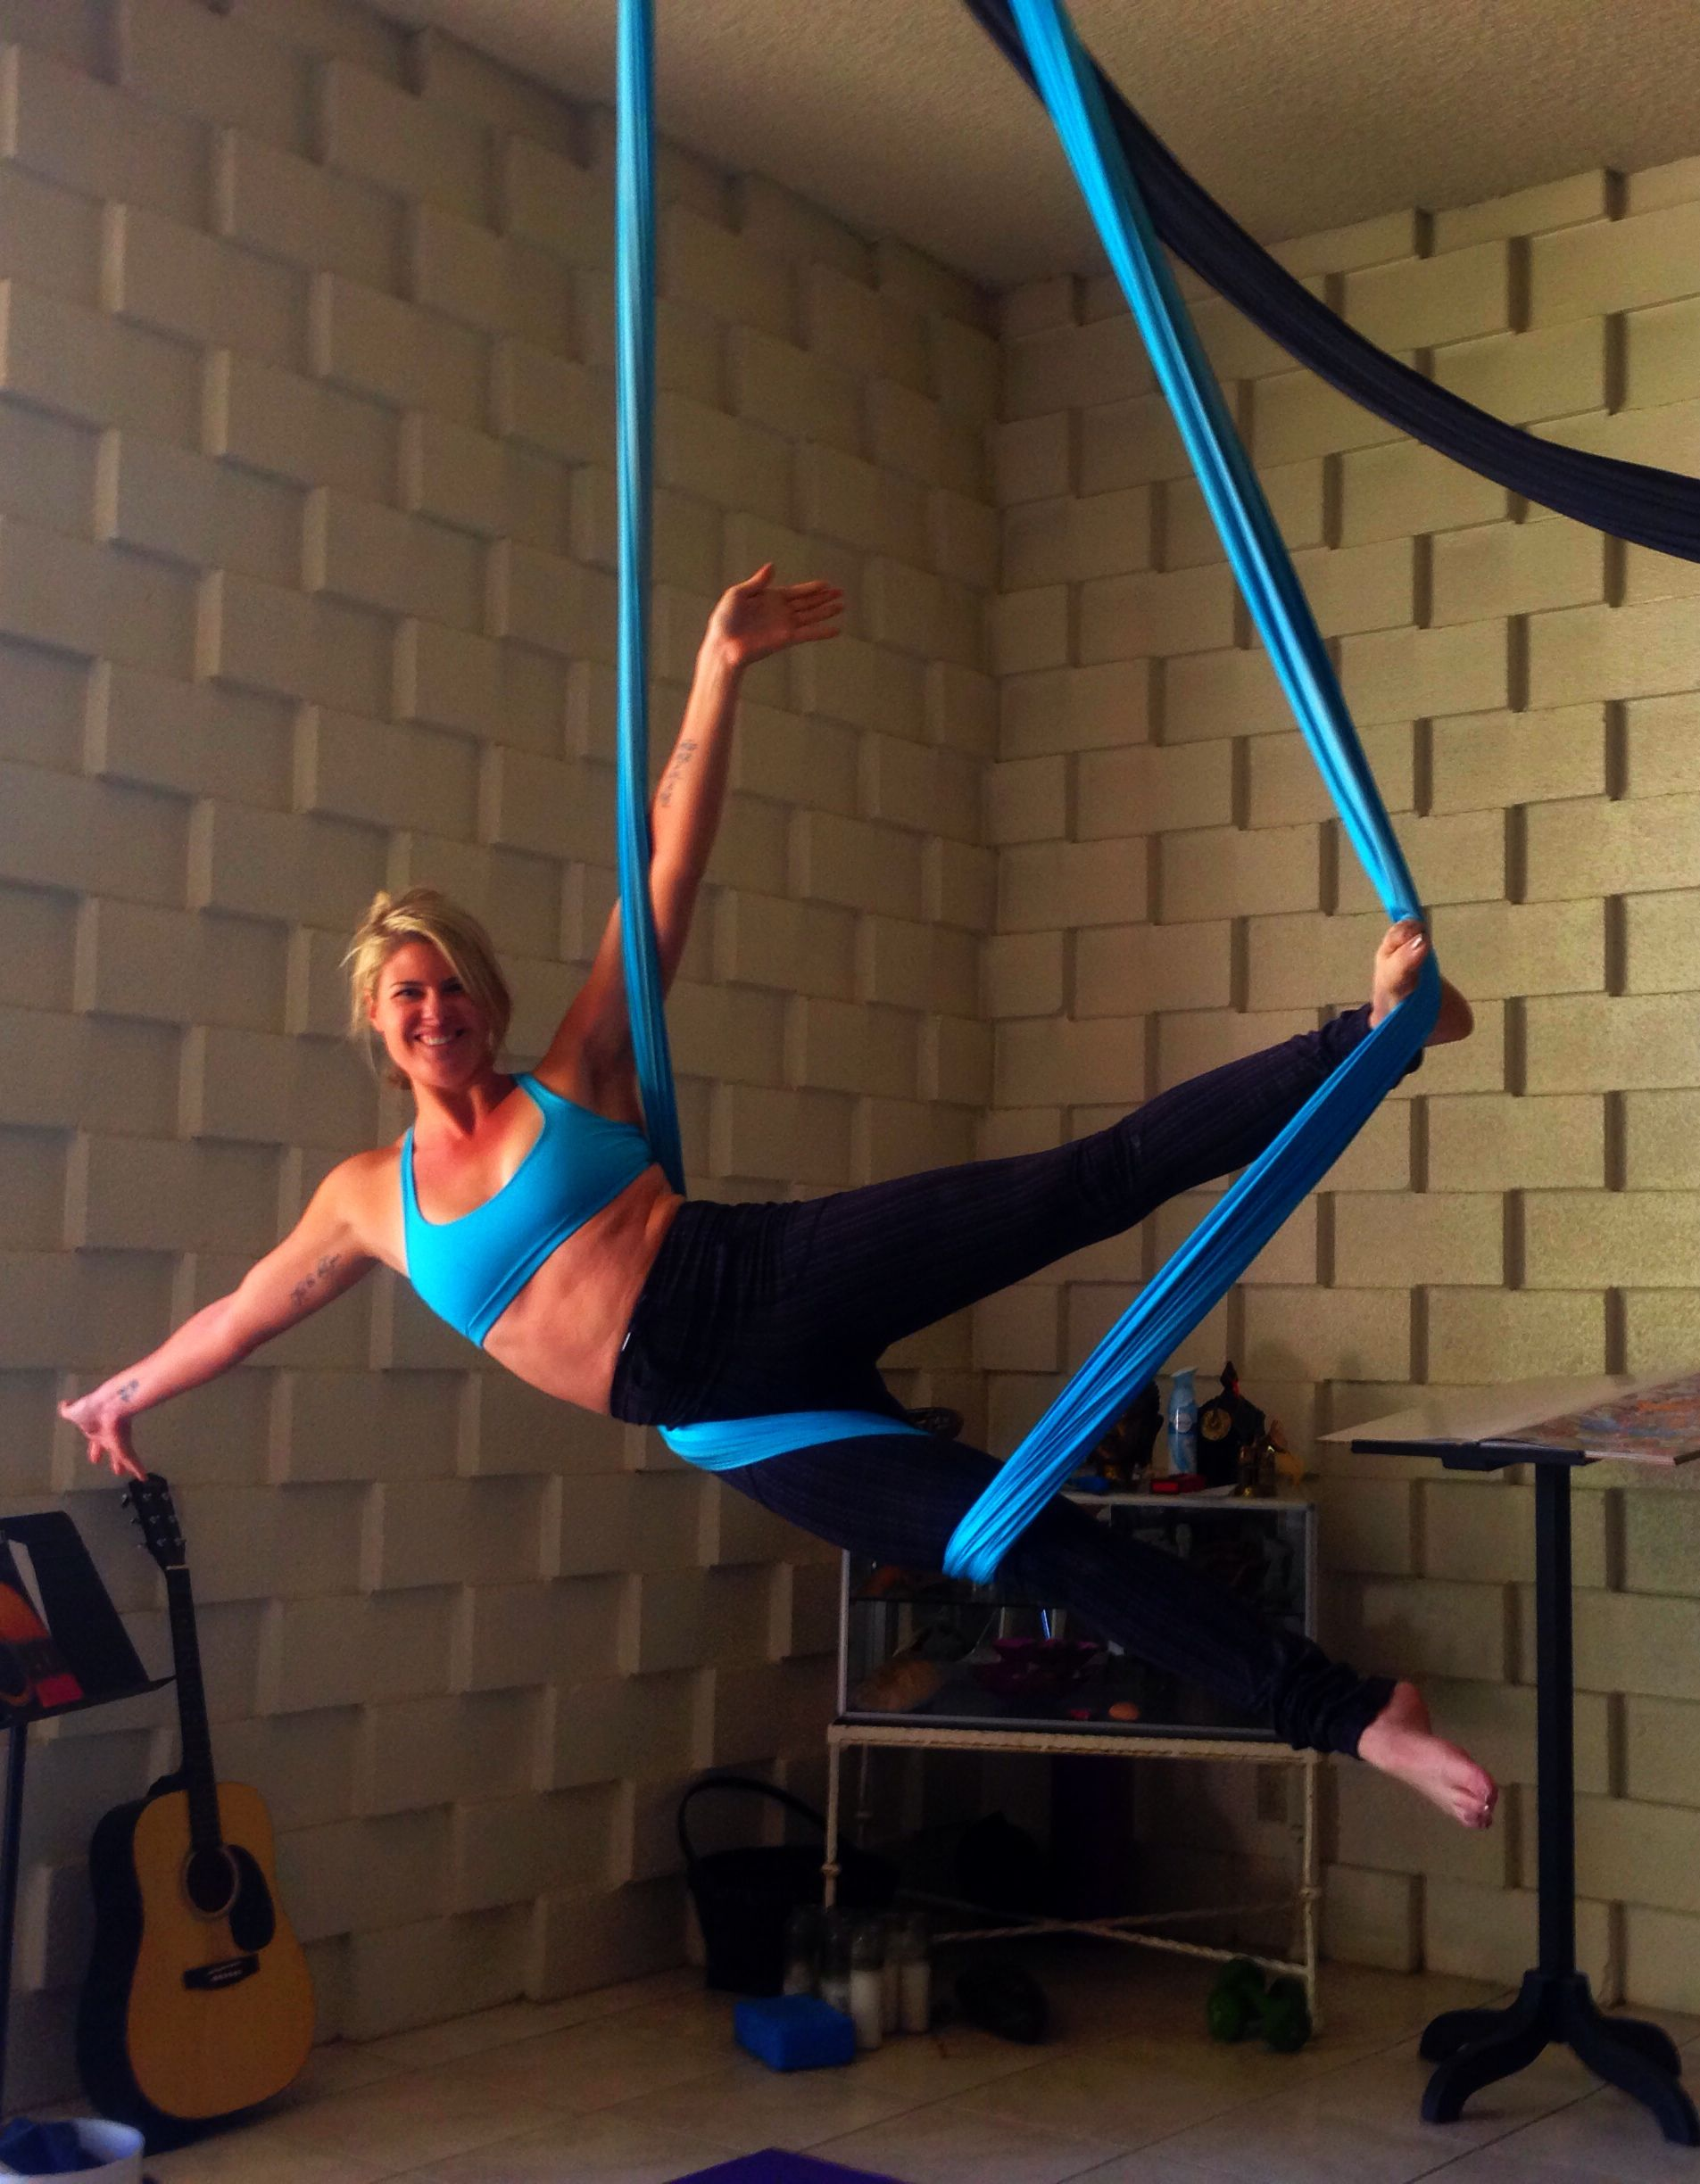 Leg Wrap Roll Dancer Foot Press Aerial Yoga Dance Silks